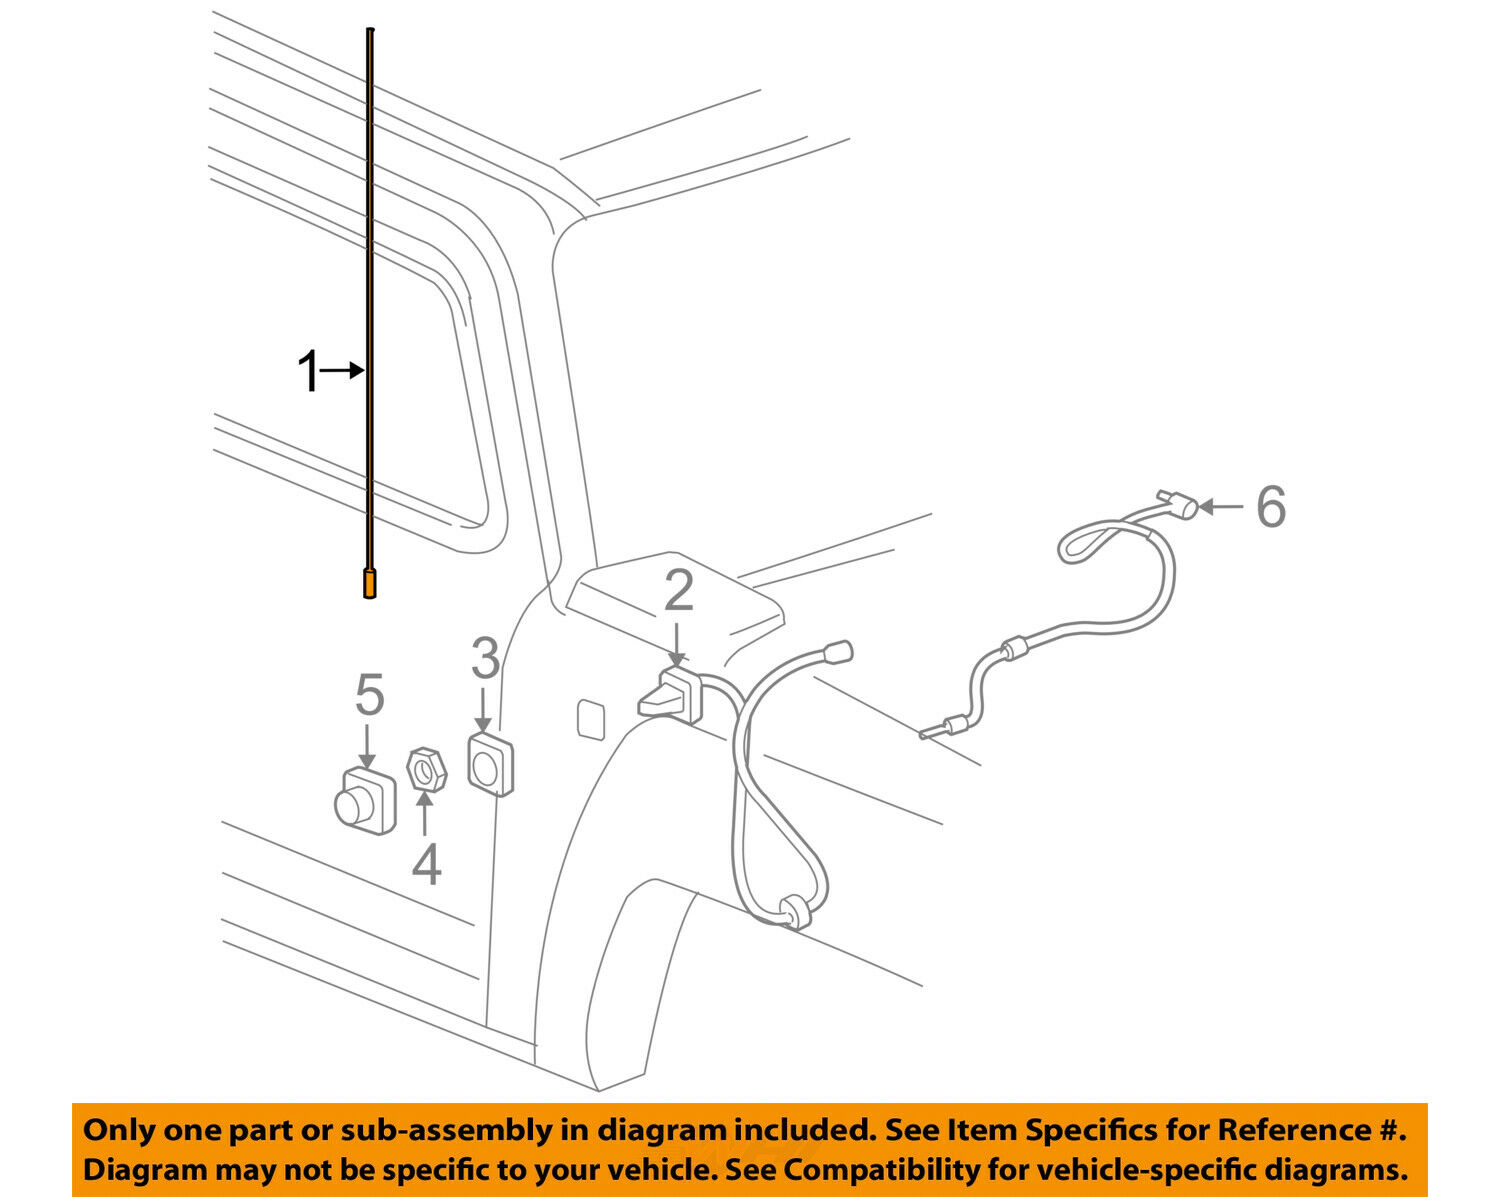 Hummer Gm Oem 06 10 H3 Antenna Mast 15114228 3045 Picclick Fuse Diagram 1 Of 2only 3 Available